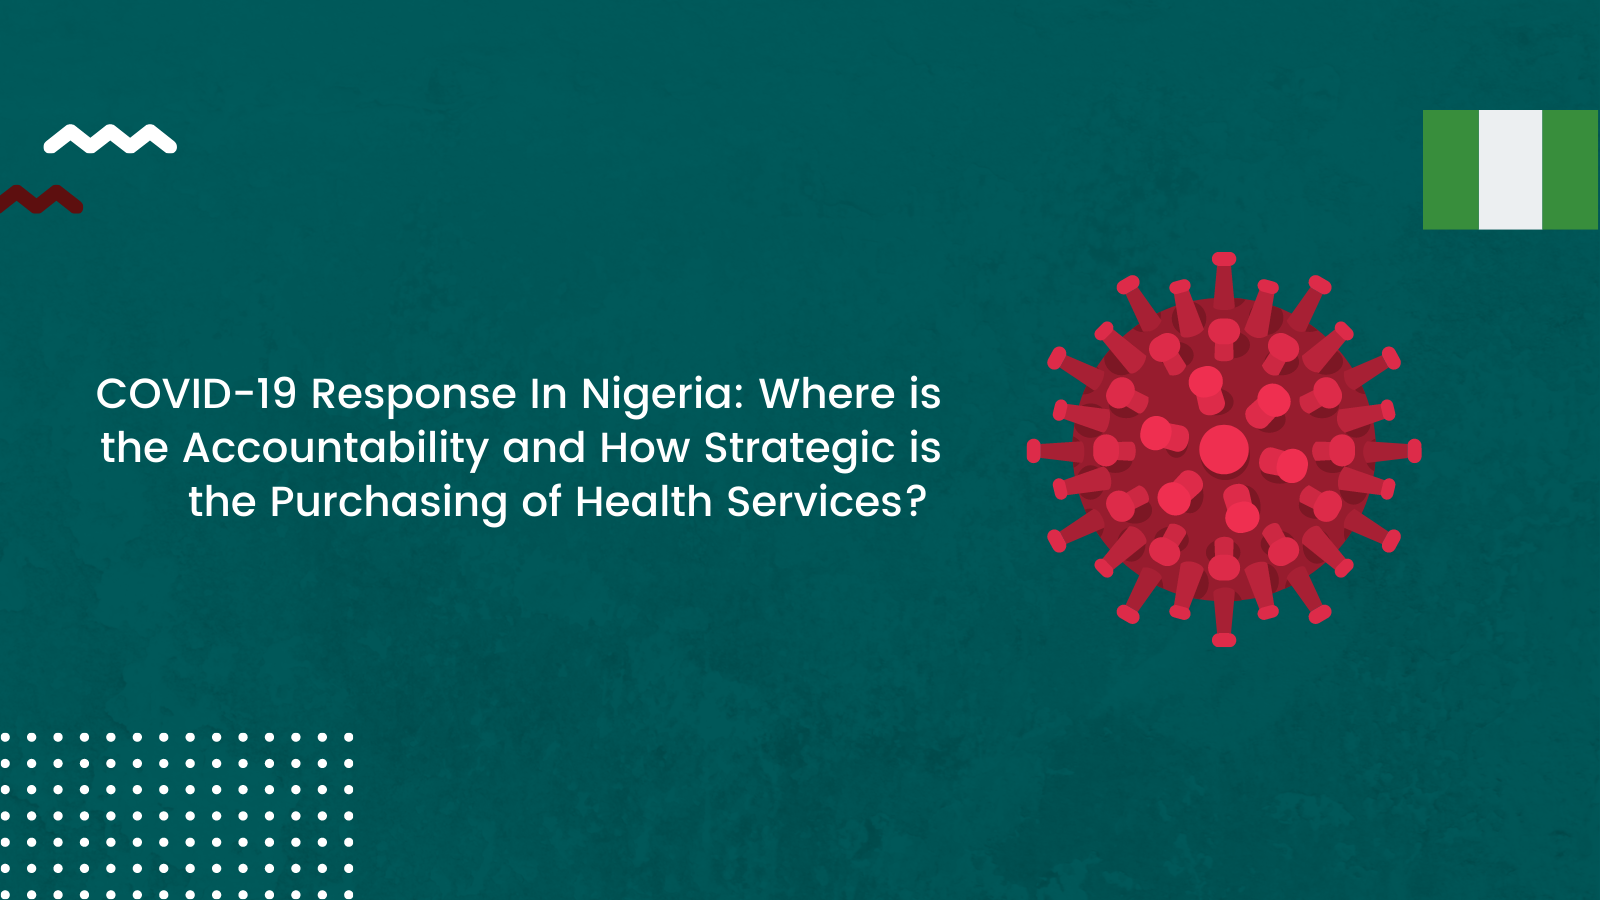 COVID-19 Response In Nigeria: Where is the Accountability and How Strategic is the Purchasing of Health Services?